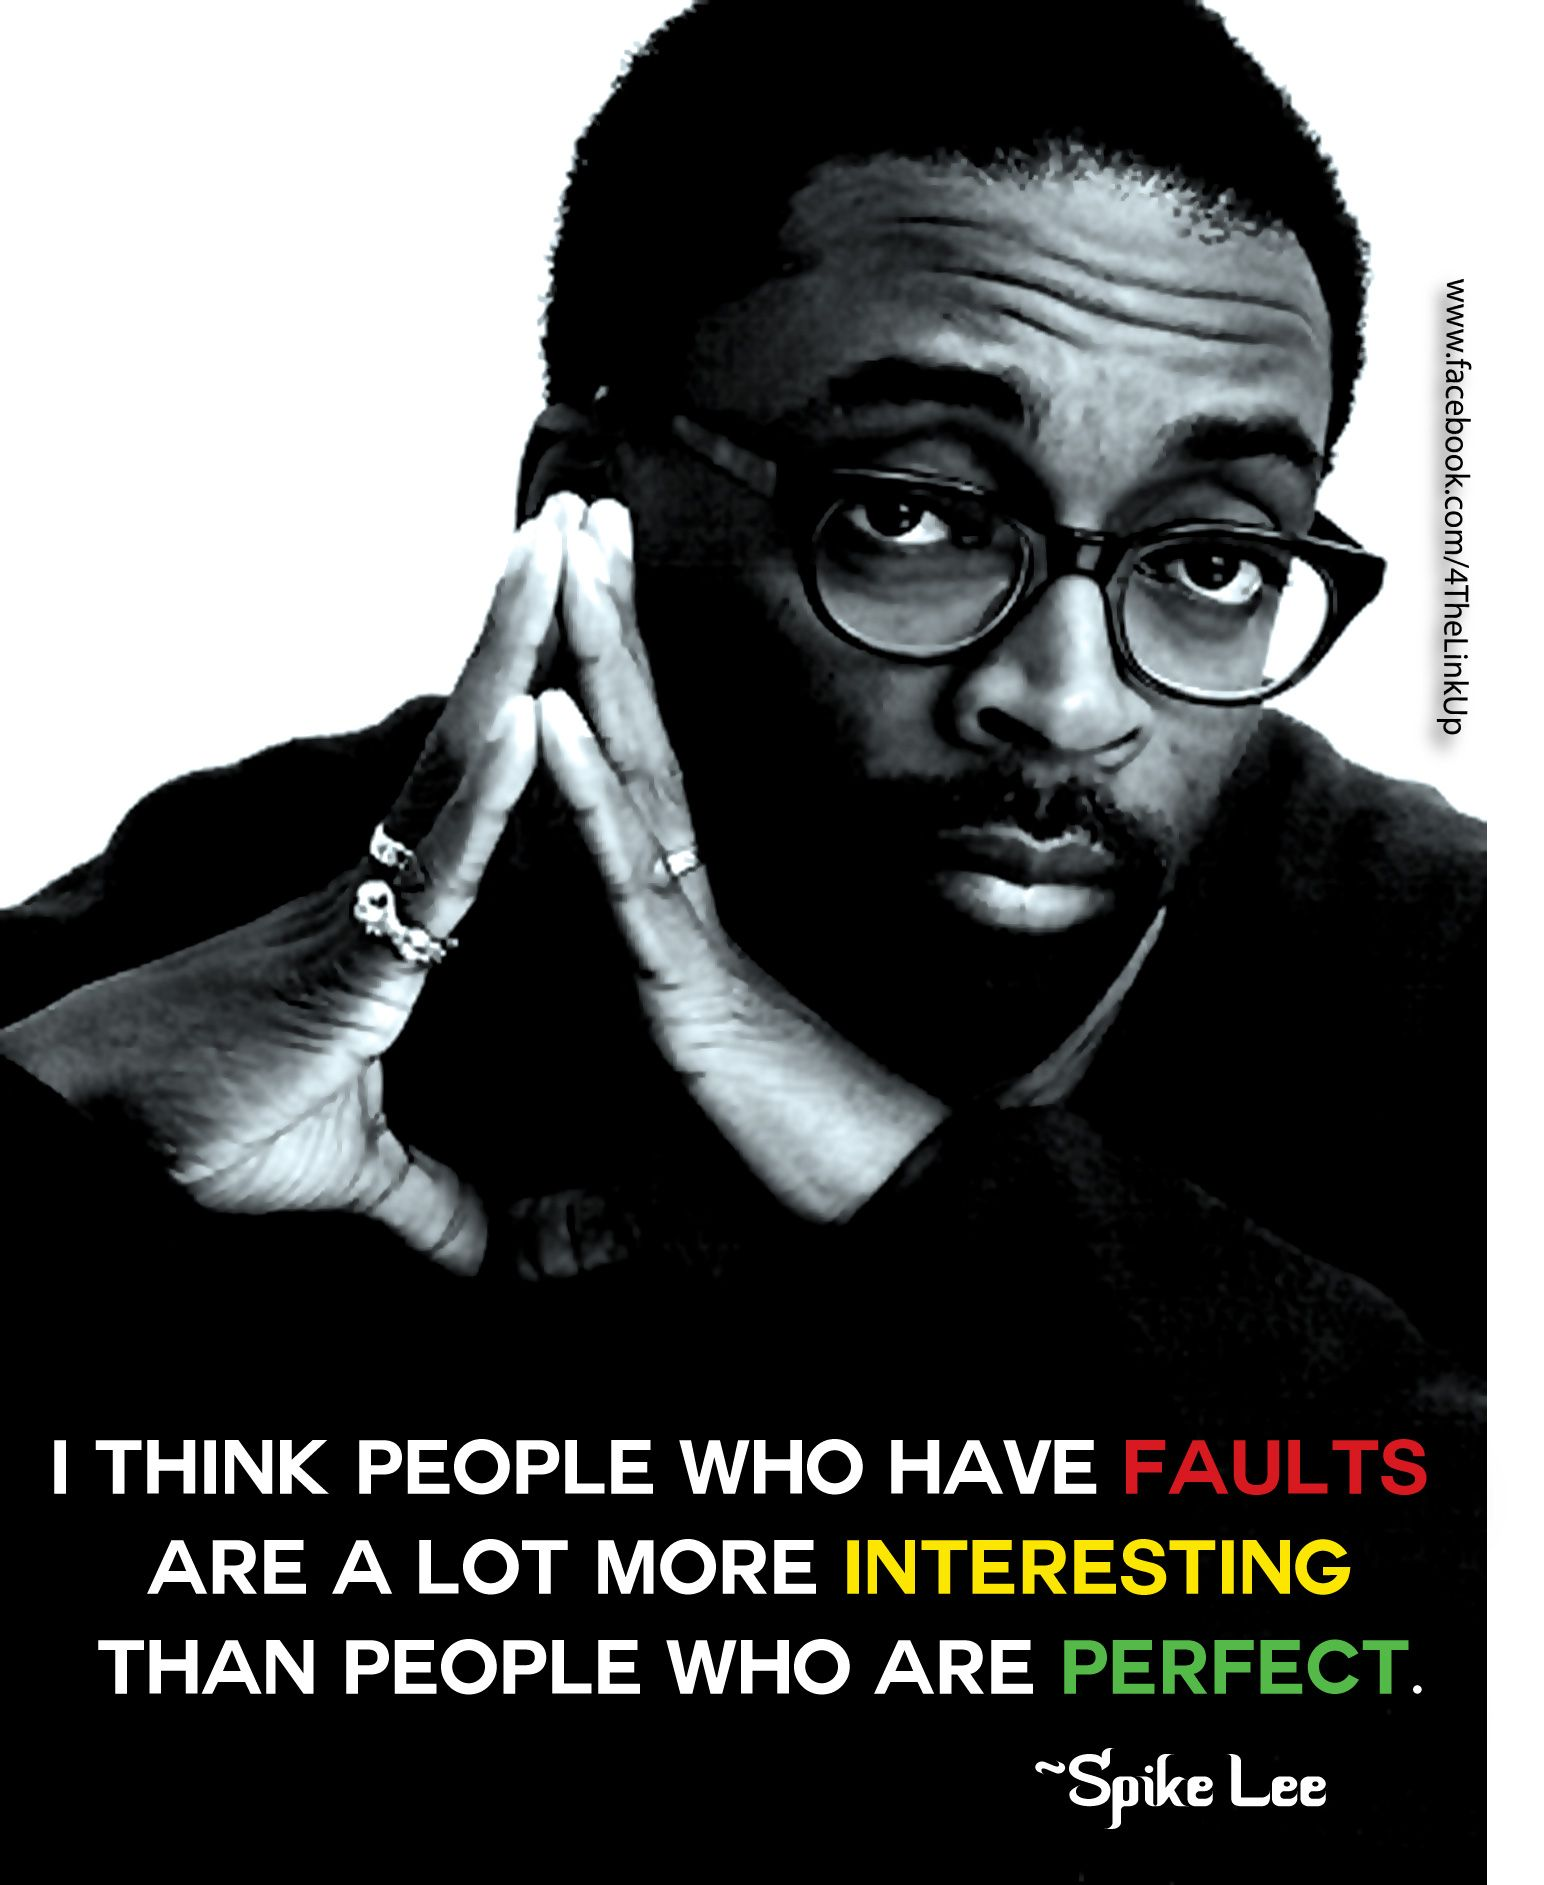 Spike Lee Film Director Quotes Film Director Quotes Pinterest